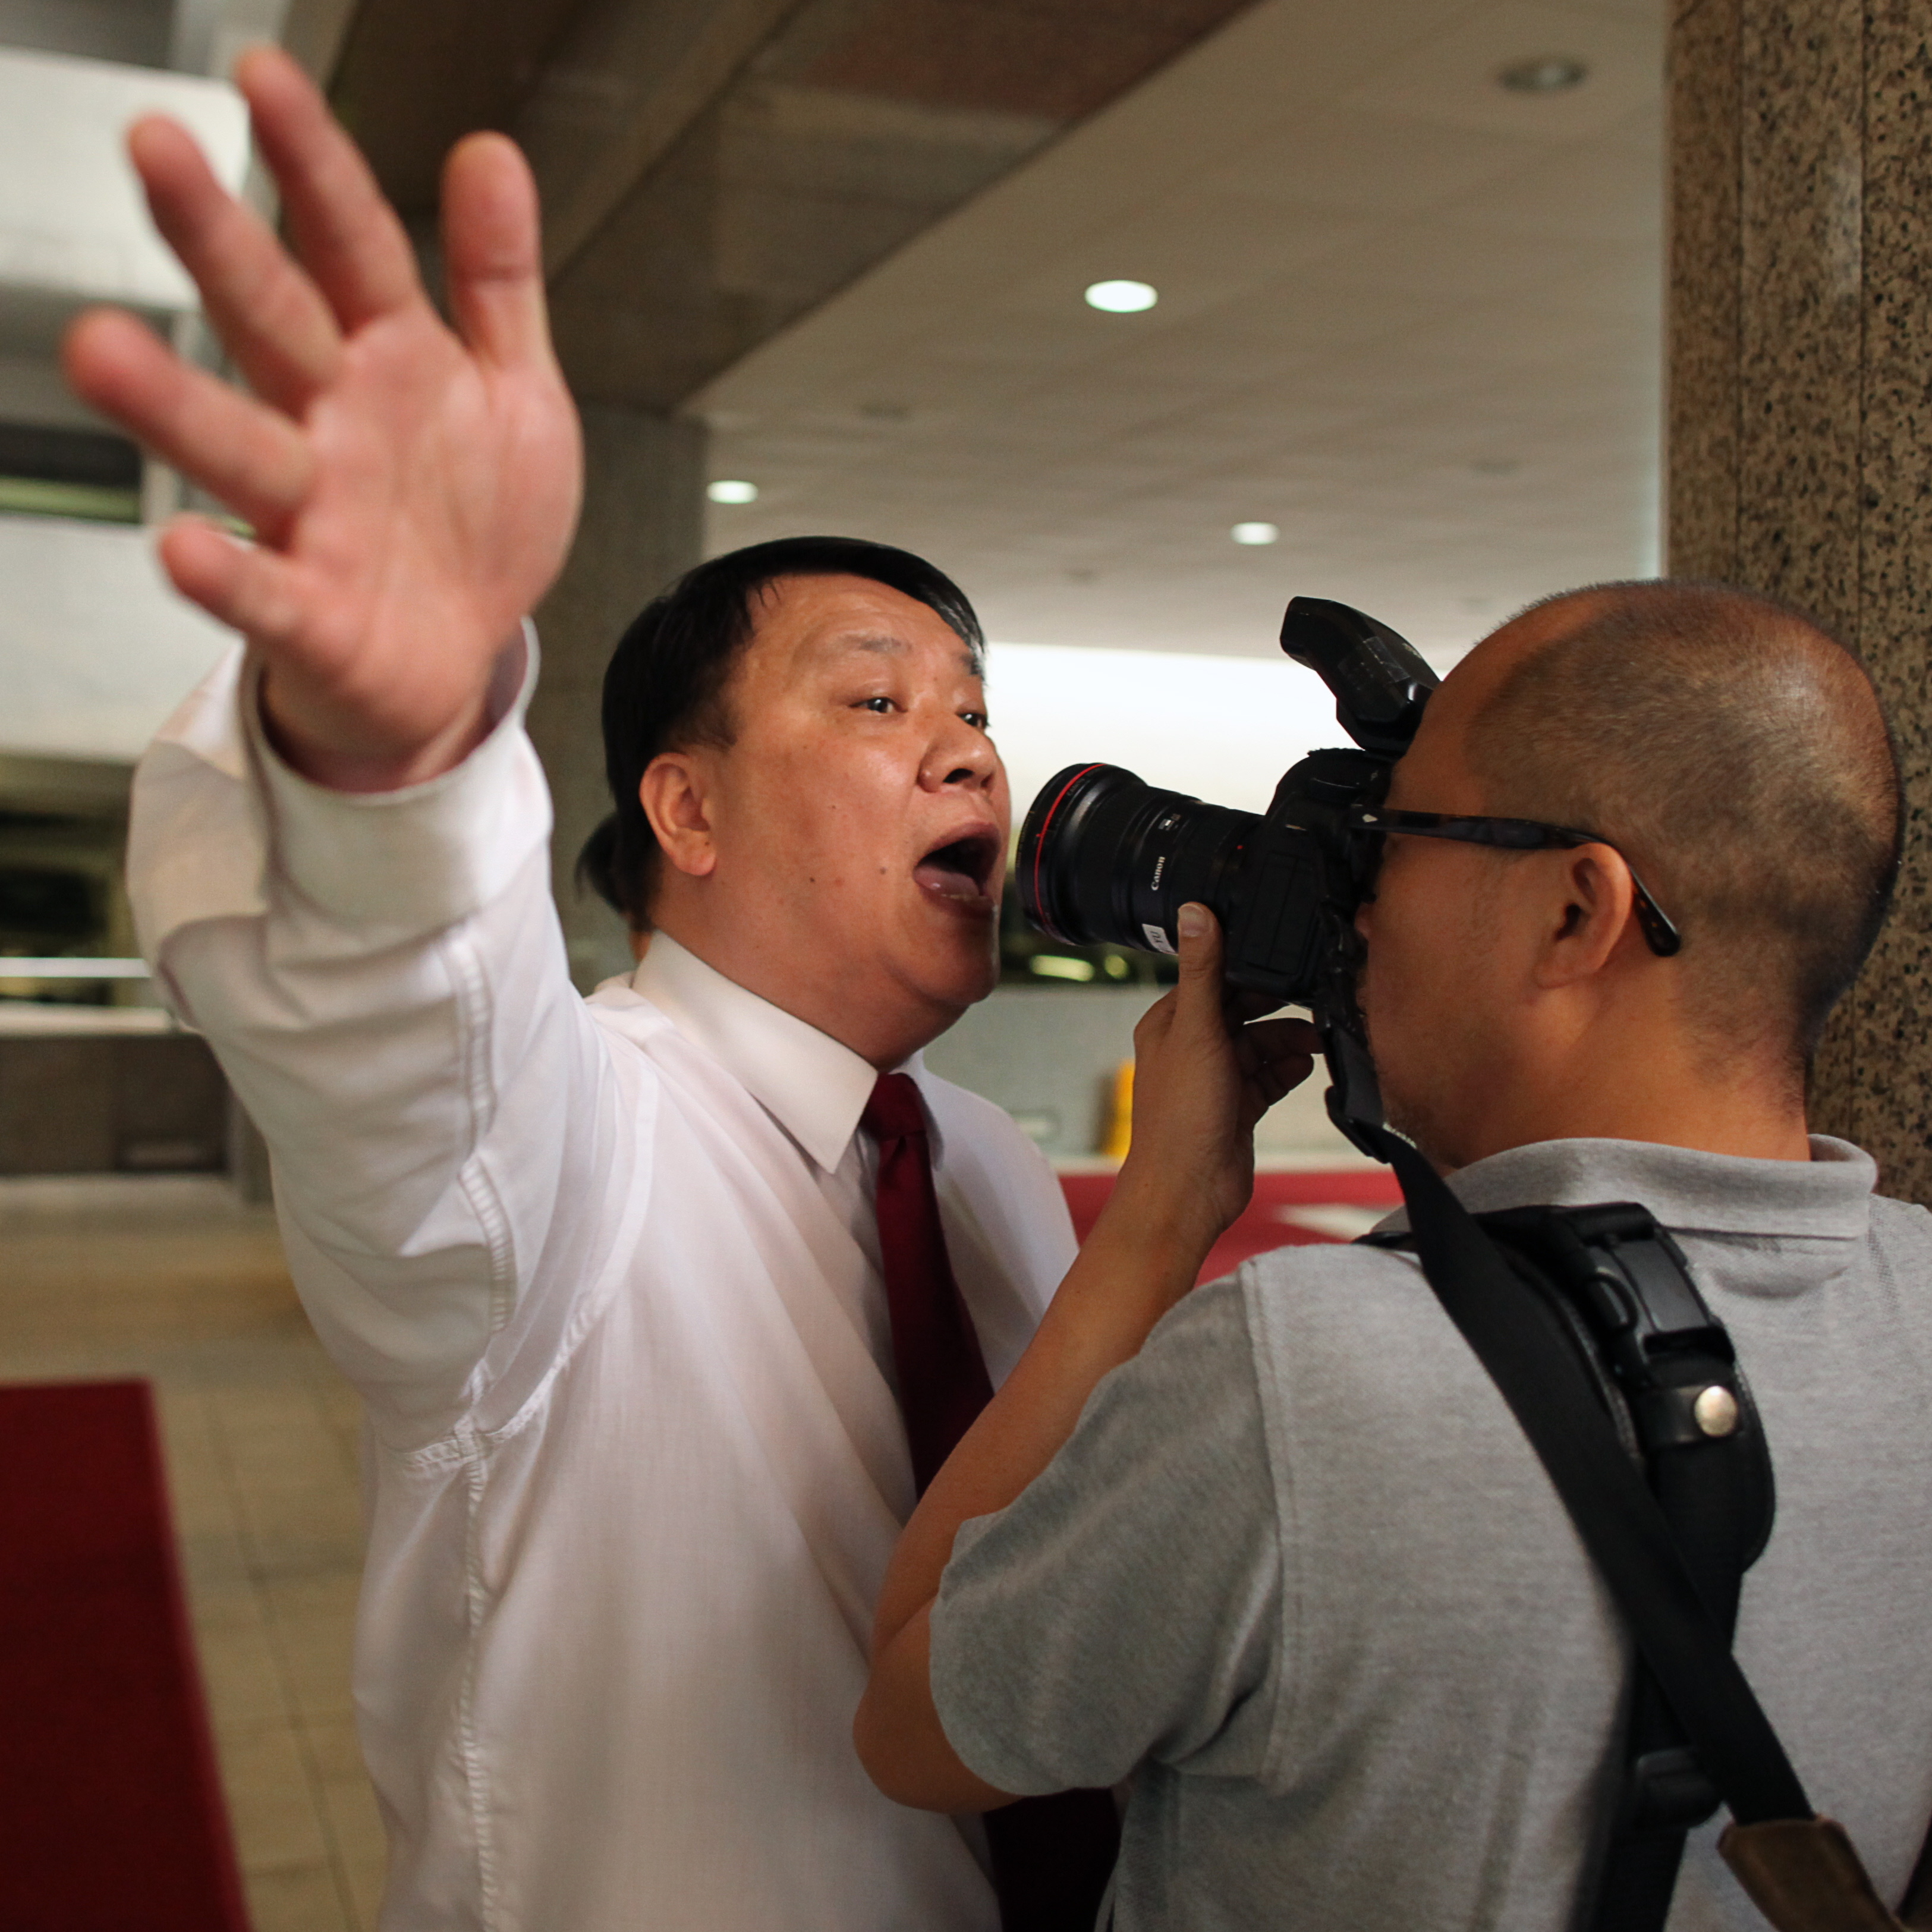 A security guard in Hong Kong makes his own censorship attempt during a protest outside the Thai consulate in 2011.